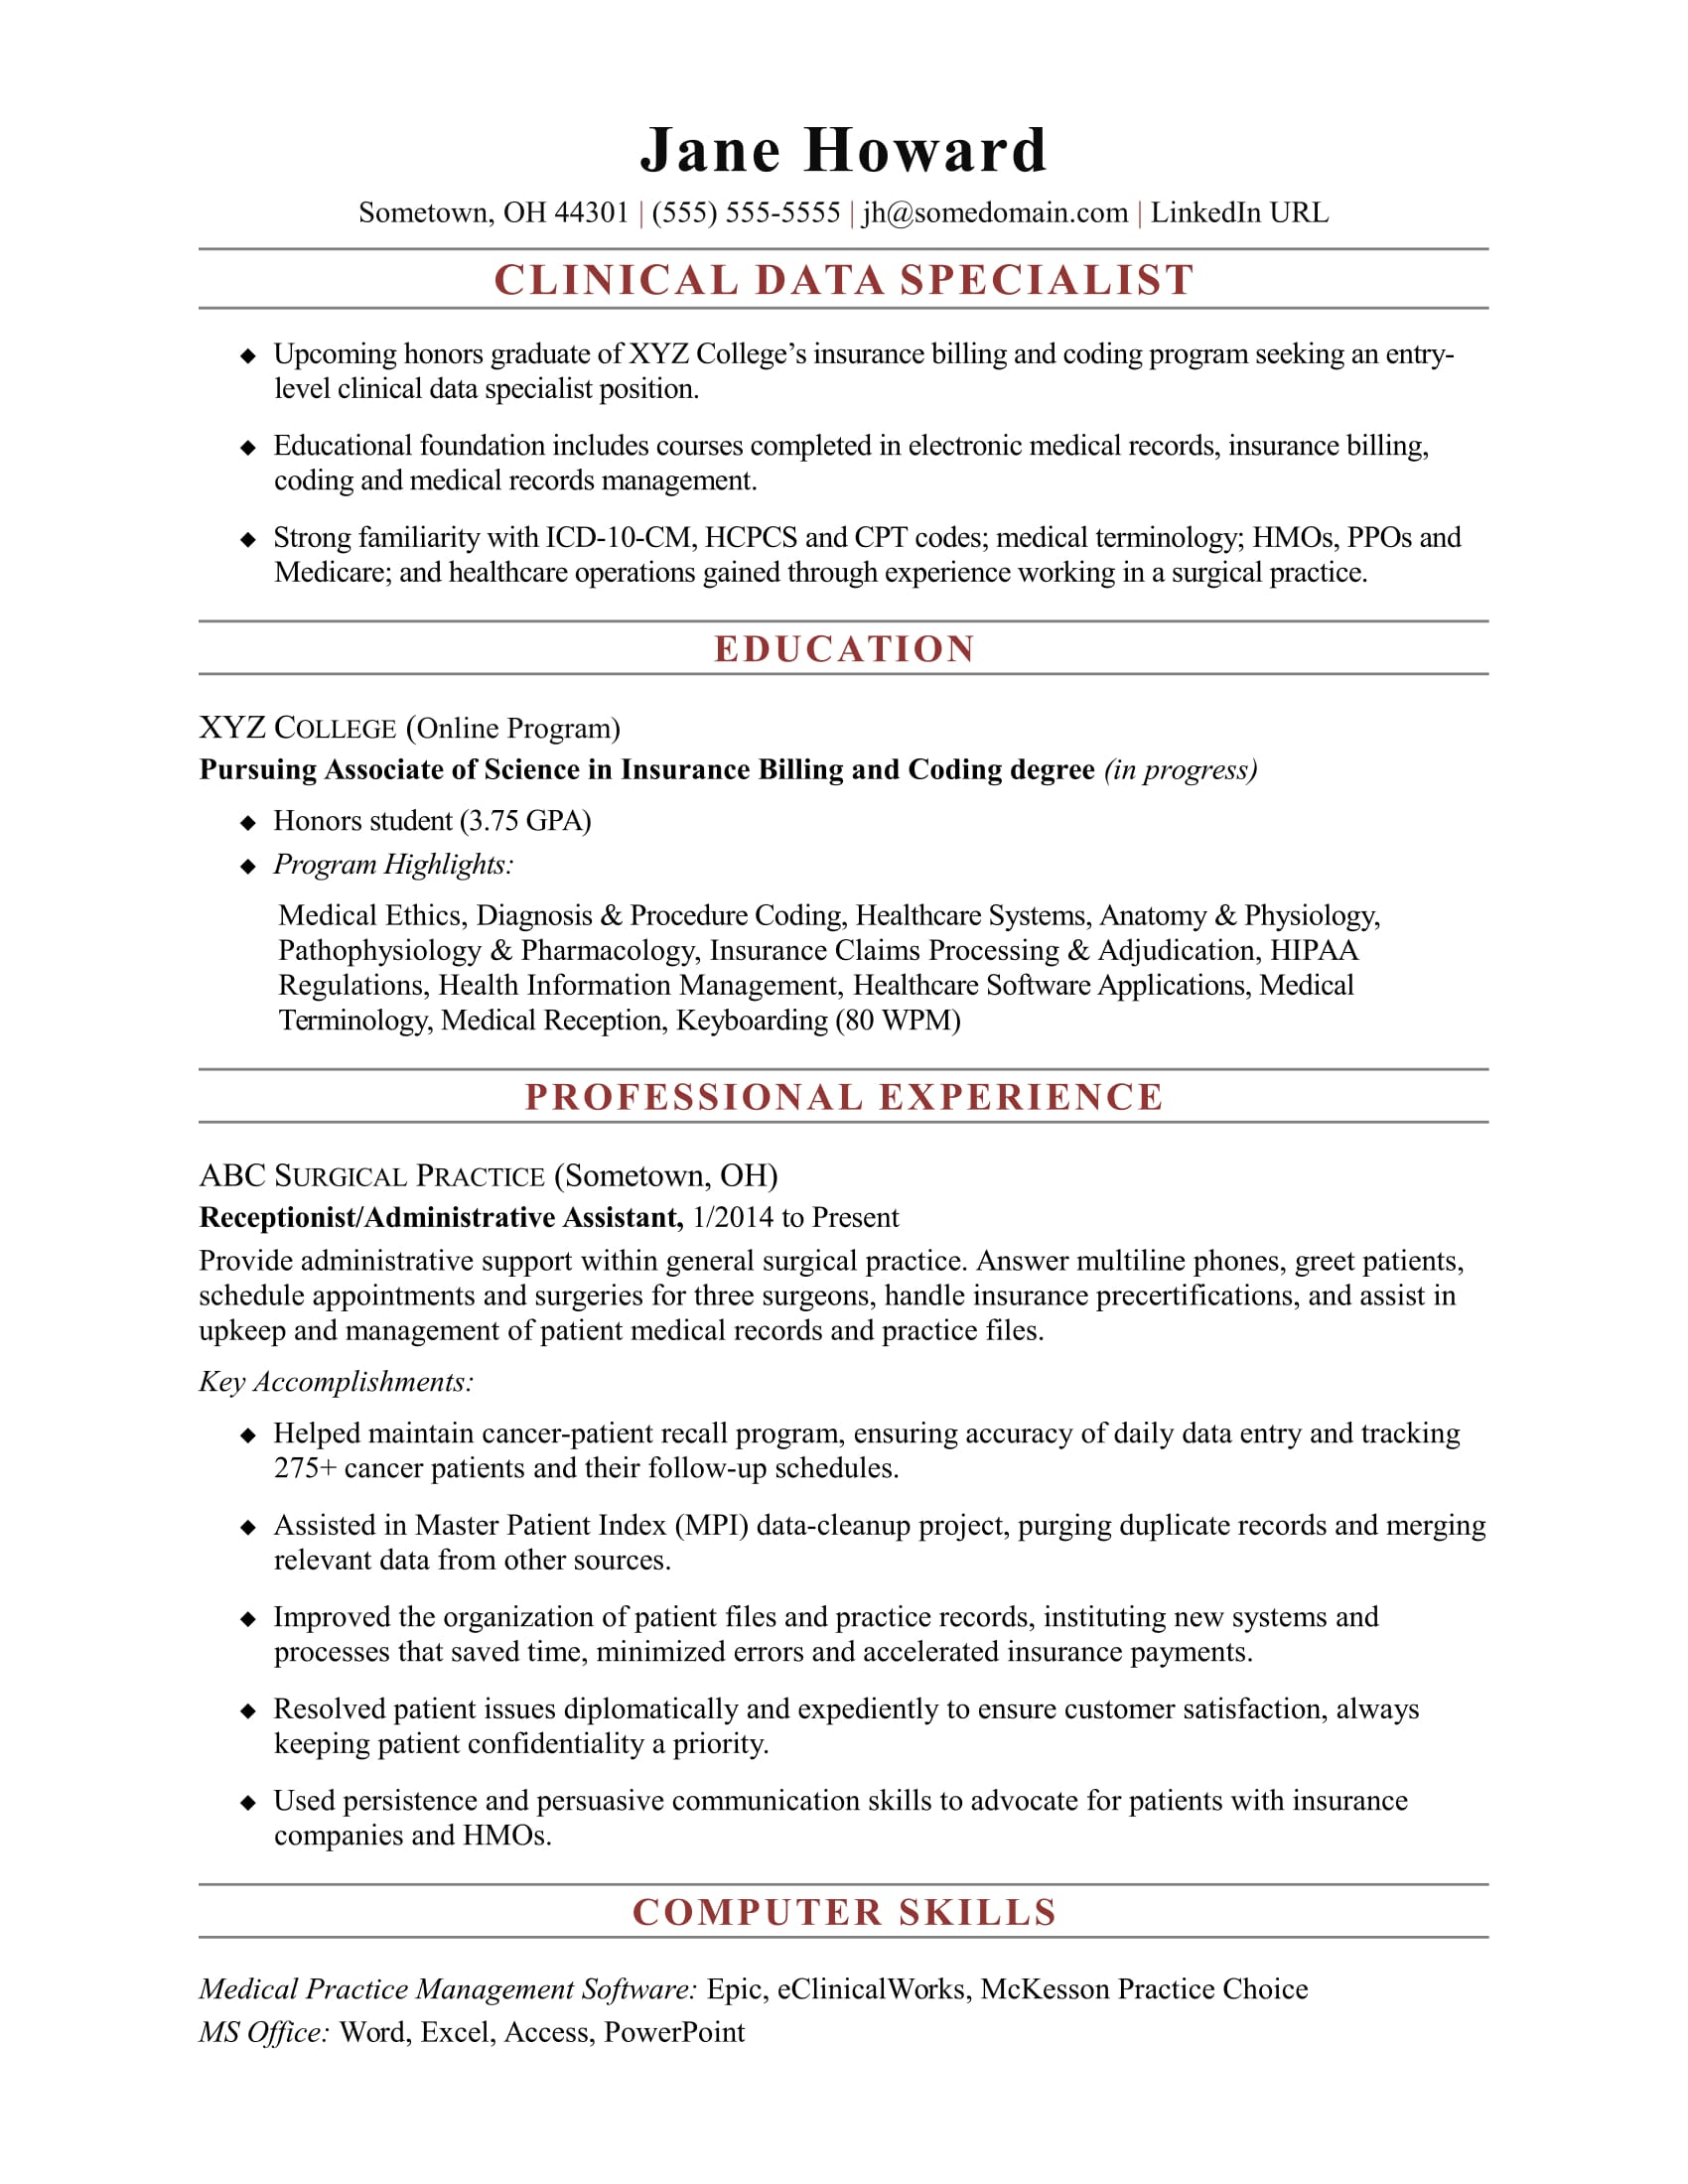 sample entry level healthcare resume - Erha.yasamayolver.com